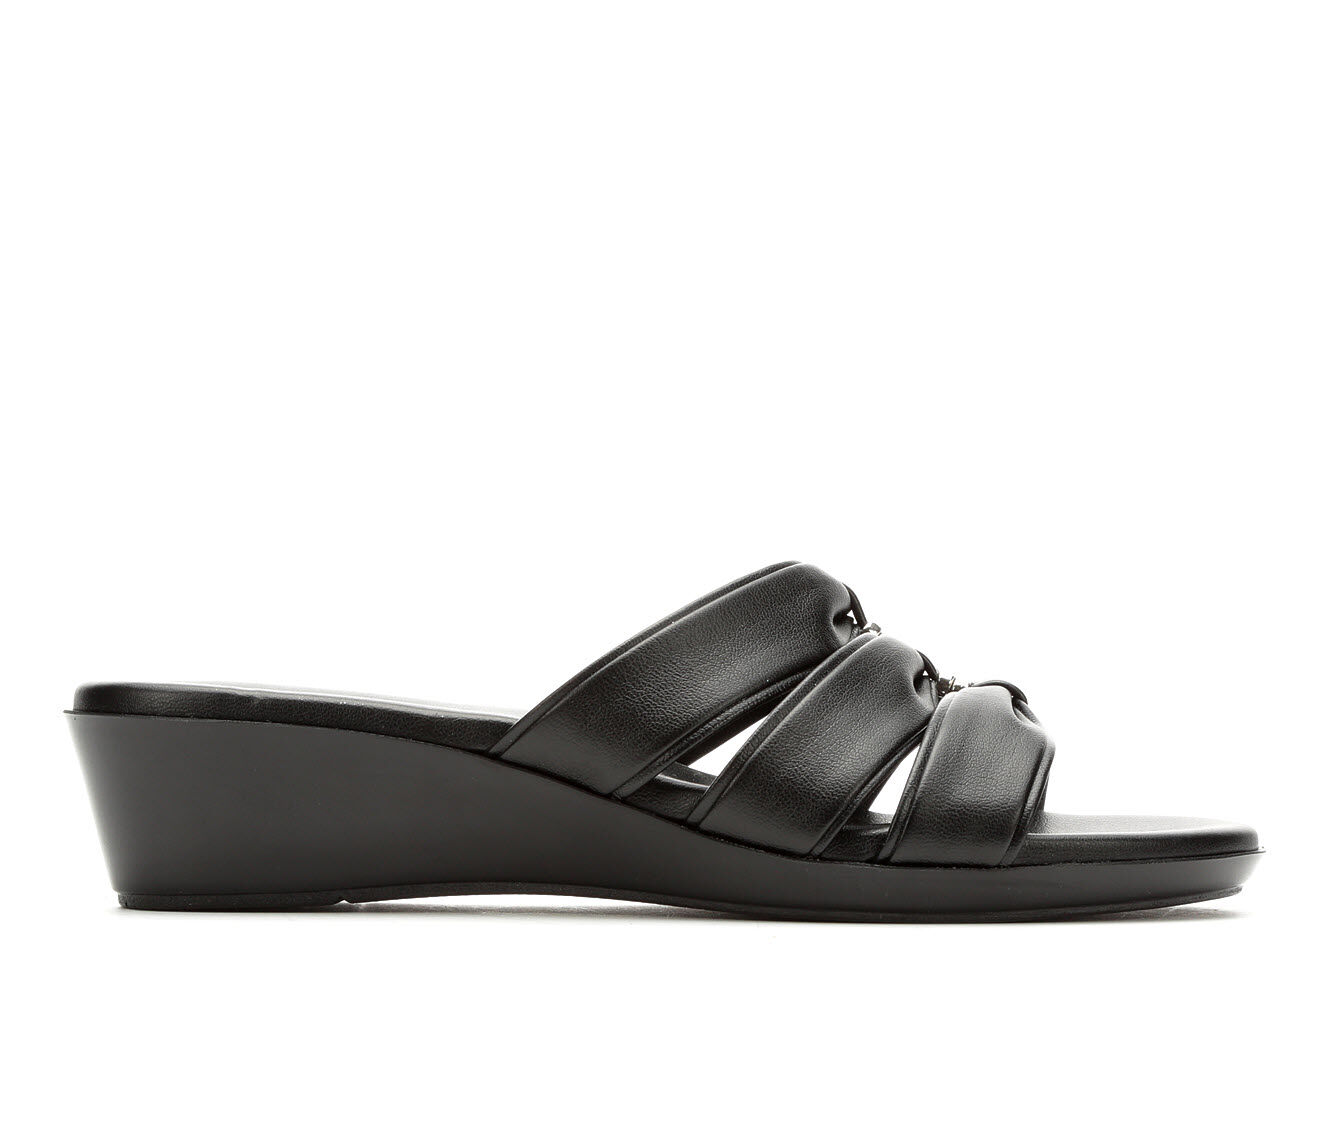 Women's Italian Shoemakers Bade Sandals Black